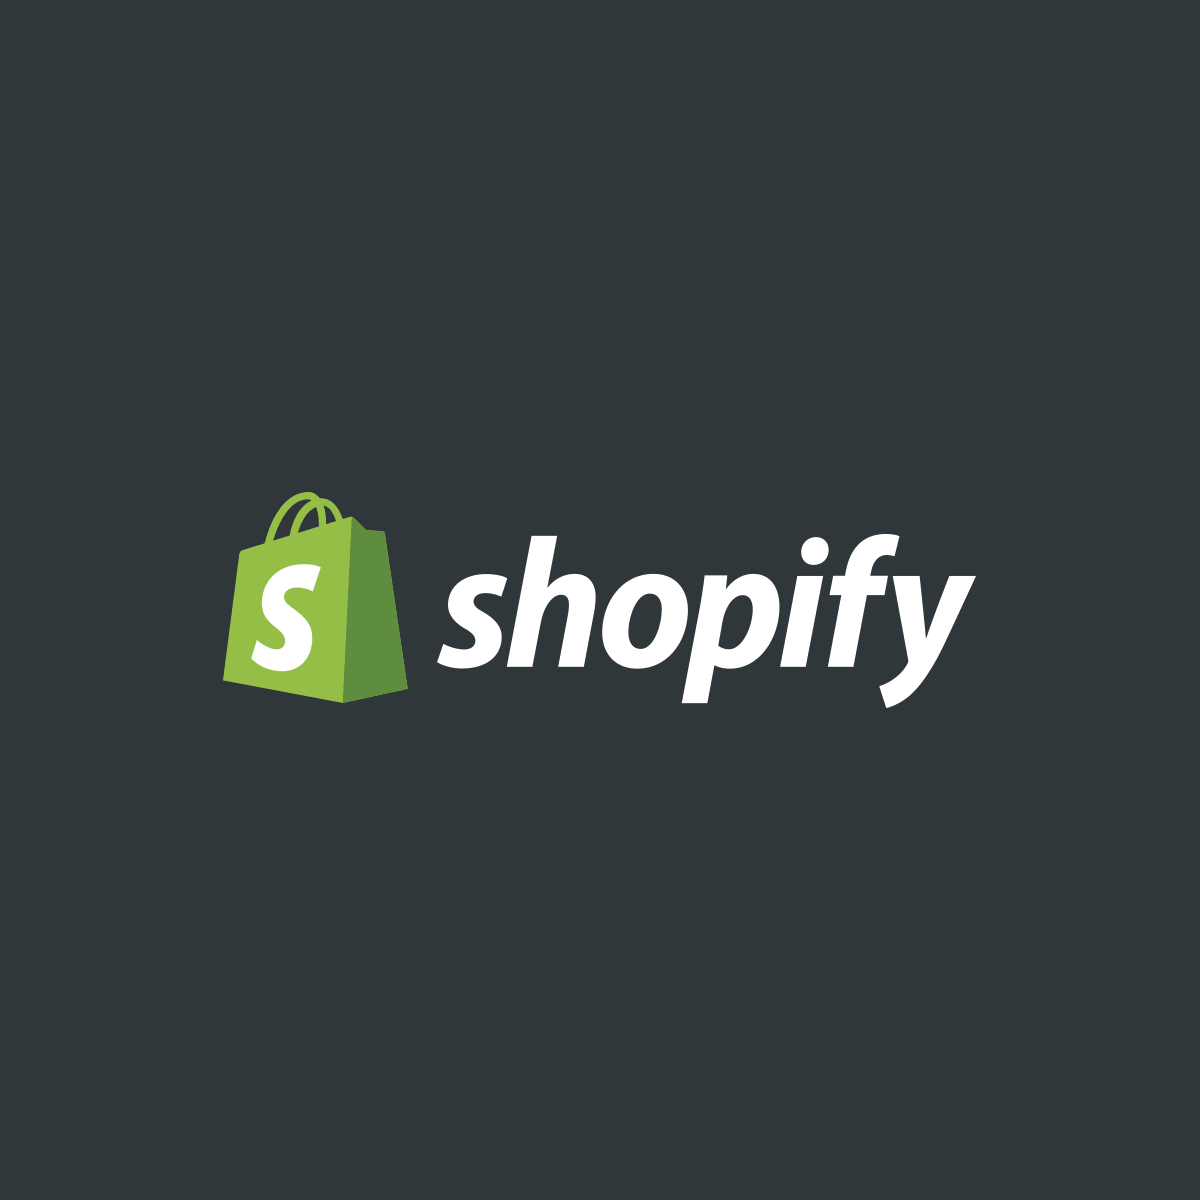 Mobile Buy SDK - Build a custom storefront - Shopify Help Center